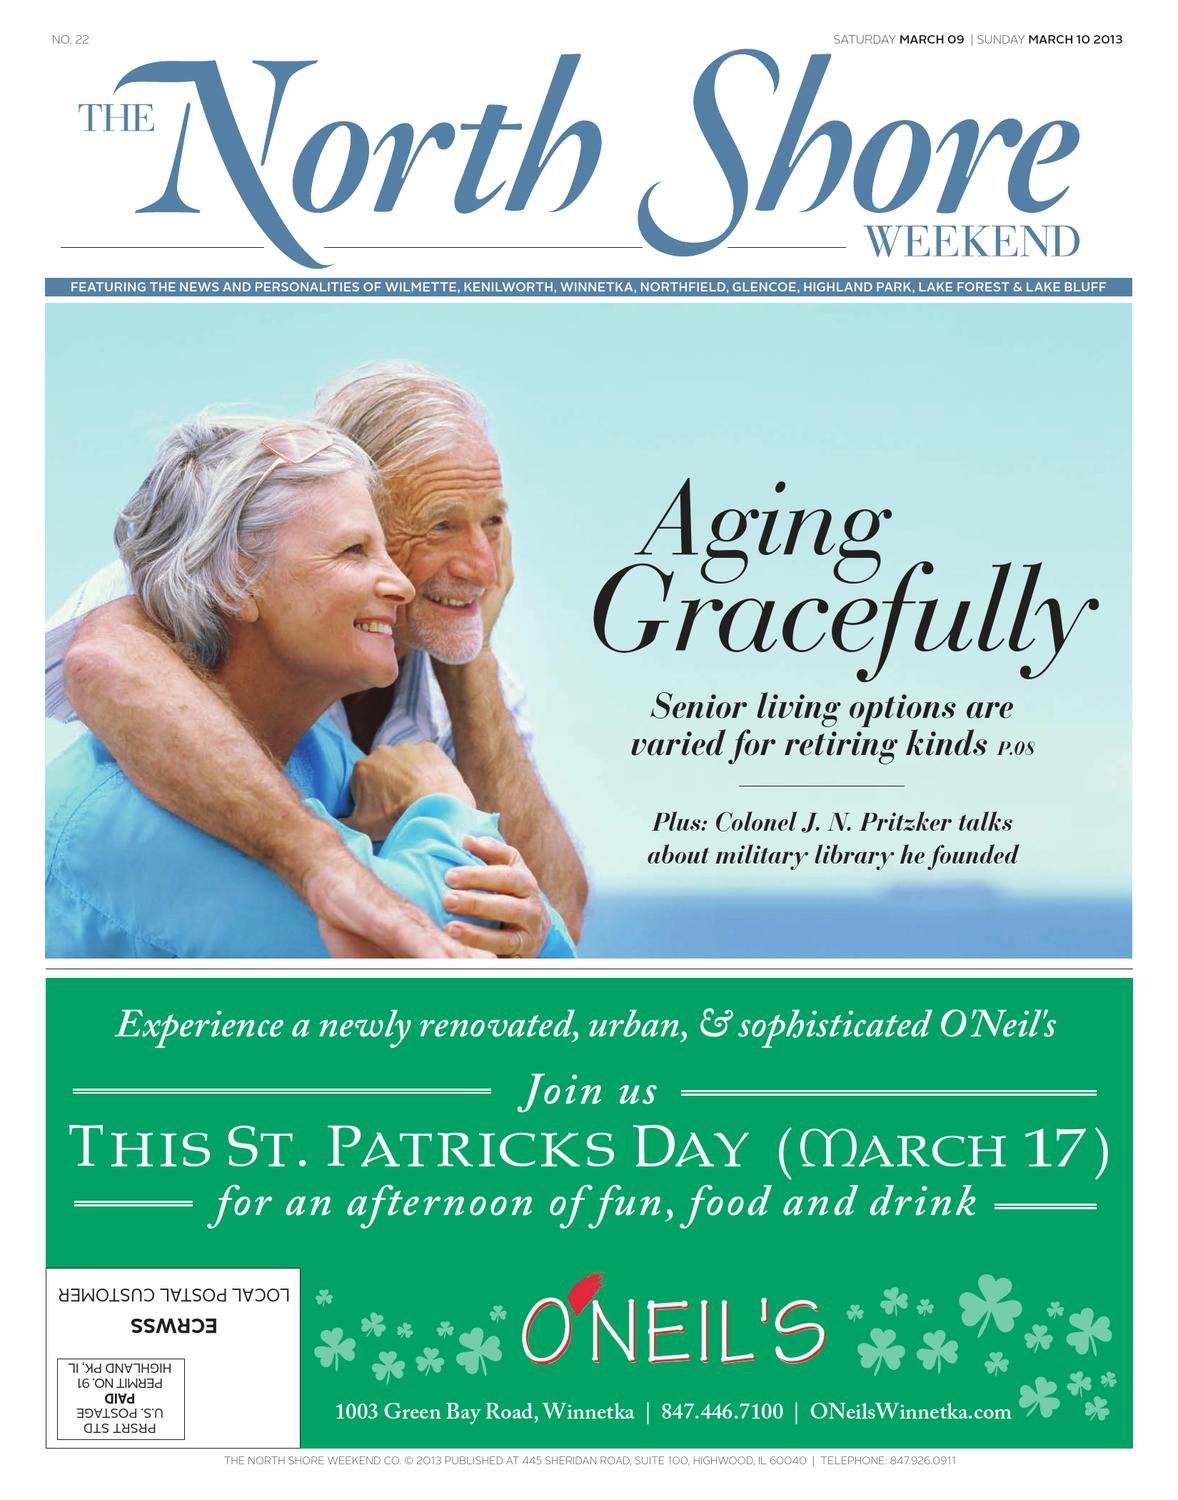 the north shore weekend east issue 22 by jwc media issuu